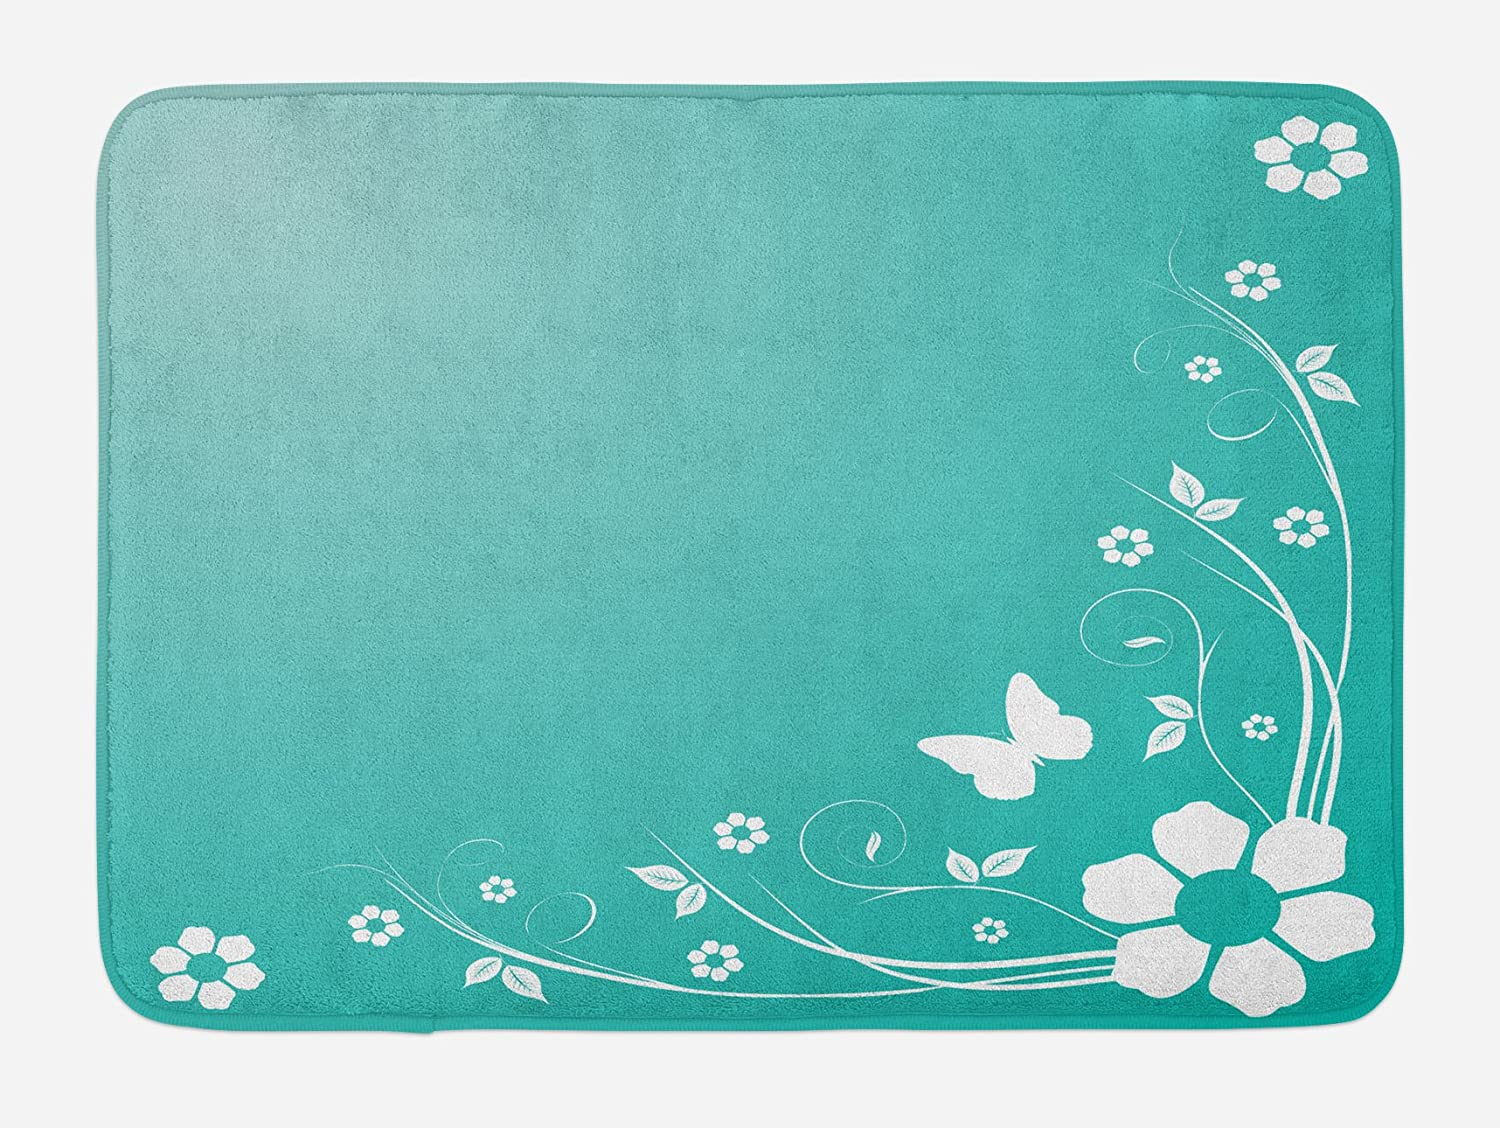 Lunarable Turquoise And White Bath Mat Flower Silhouette Leaves Butterfly On Abstract Background Plush Bathroom